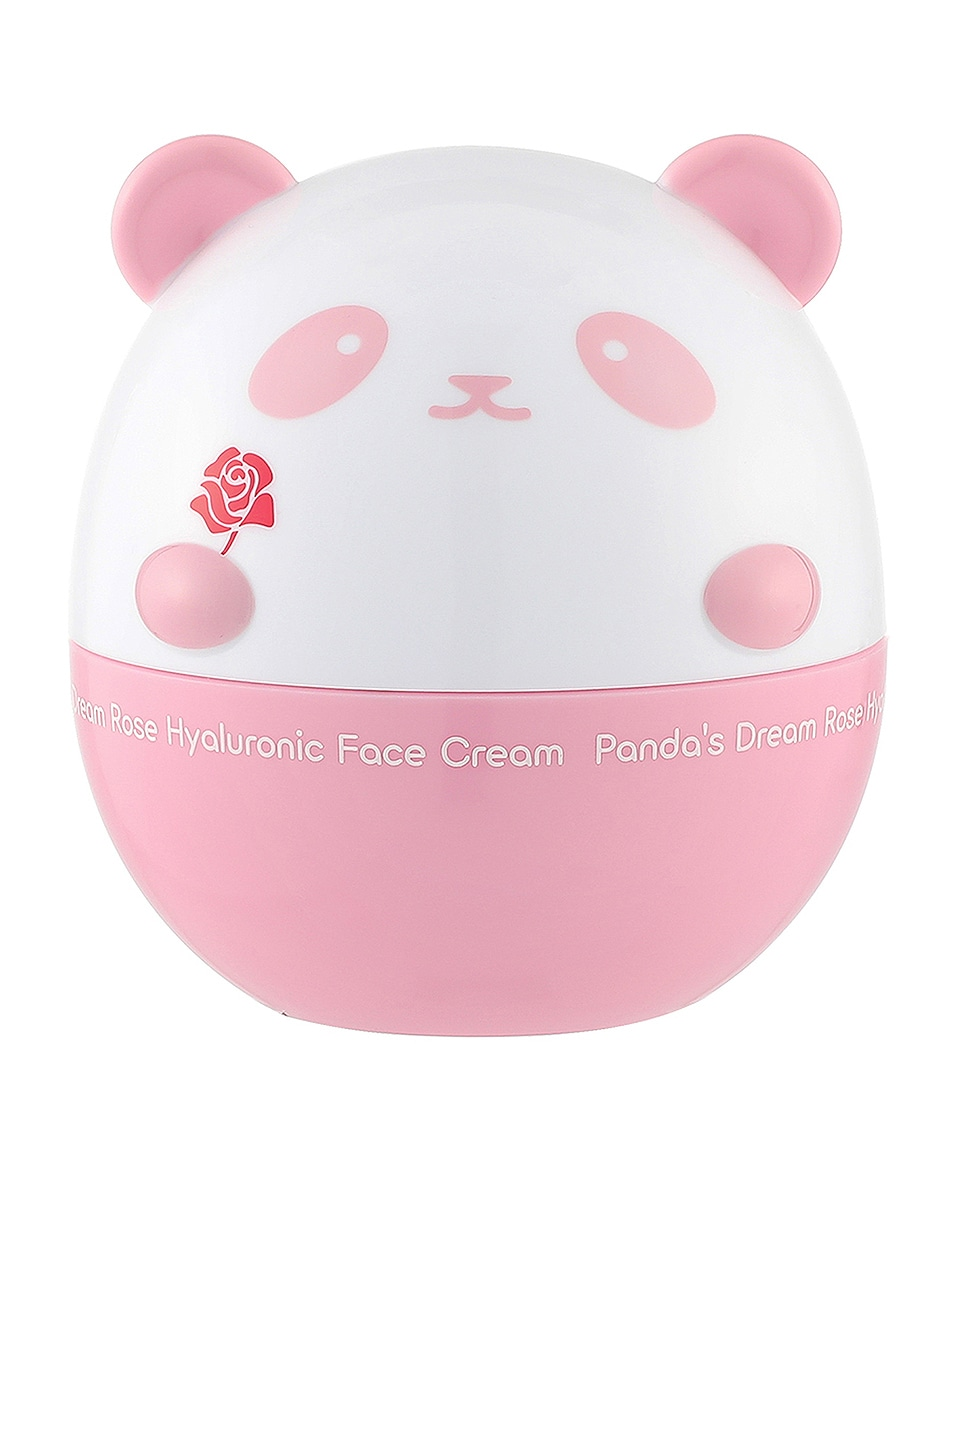 TONYMOLY Panda's Dream Rose Hyaluronic Moisture Cream